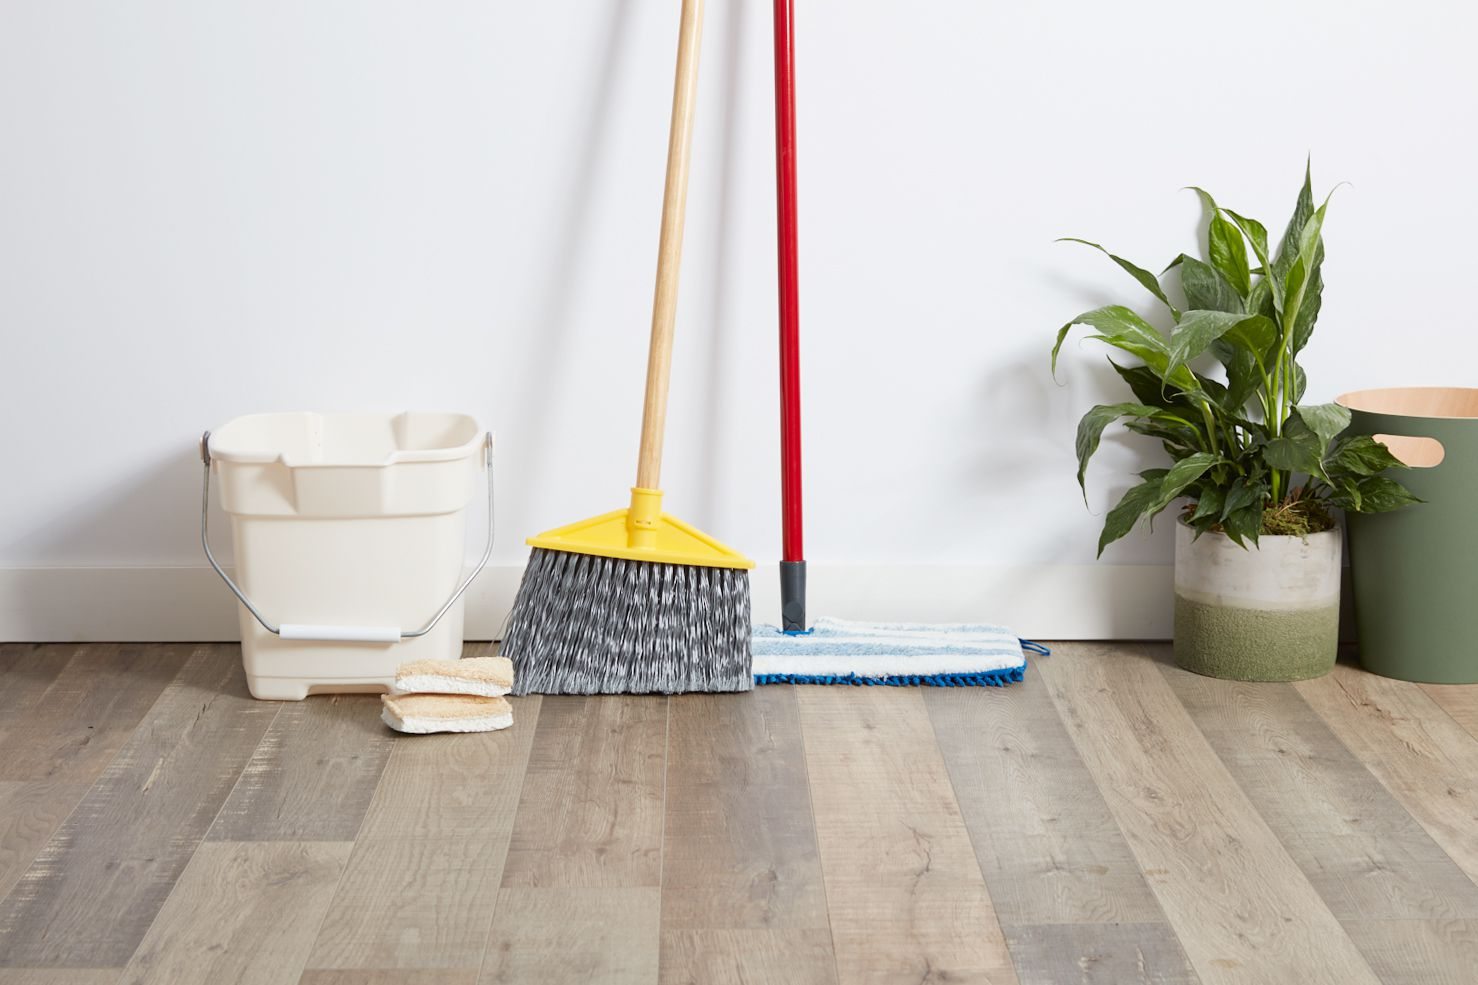 Cleaning supplies for laminate floor